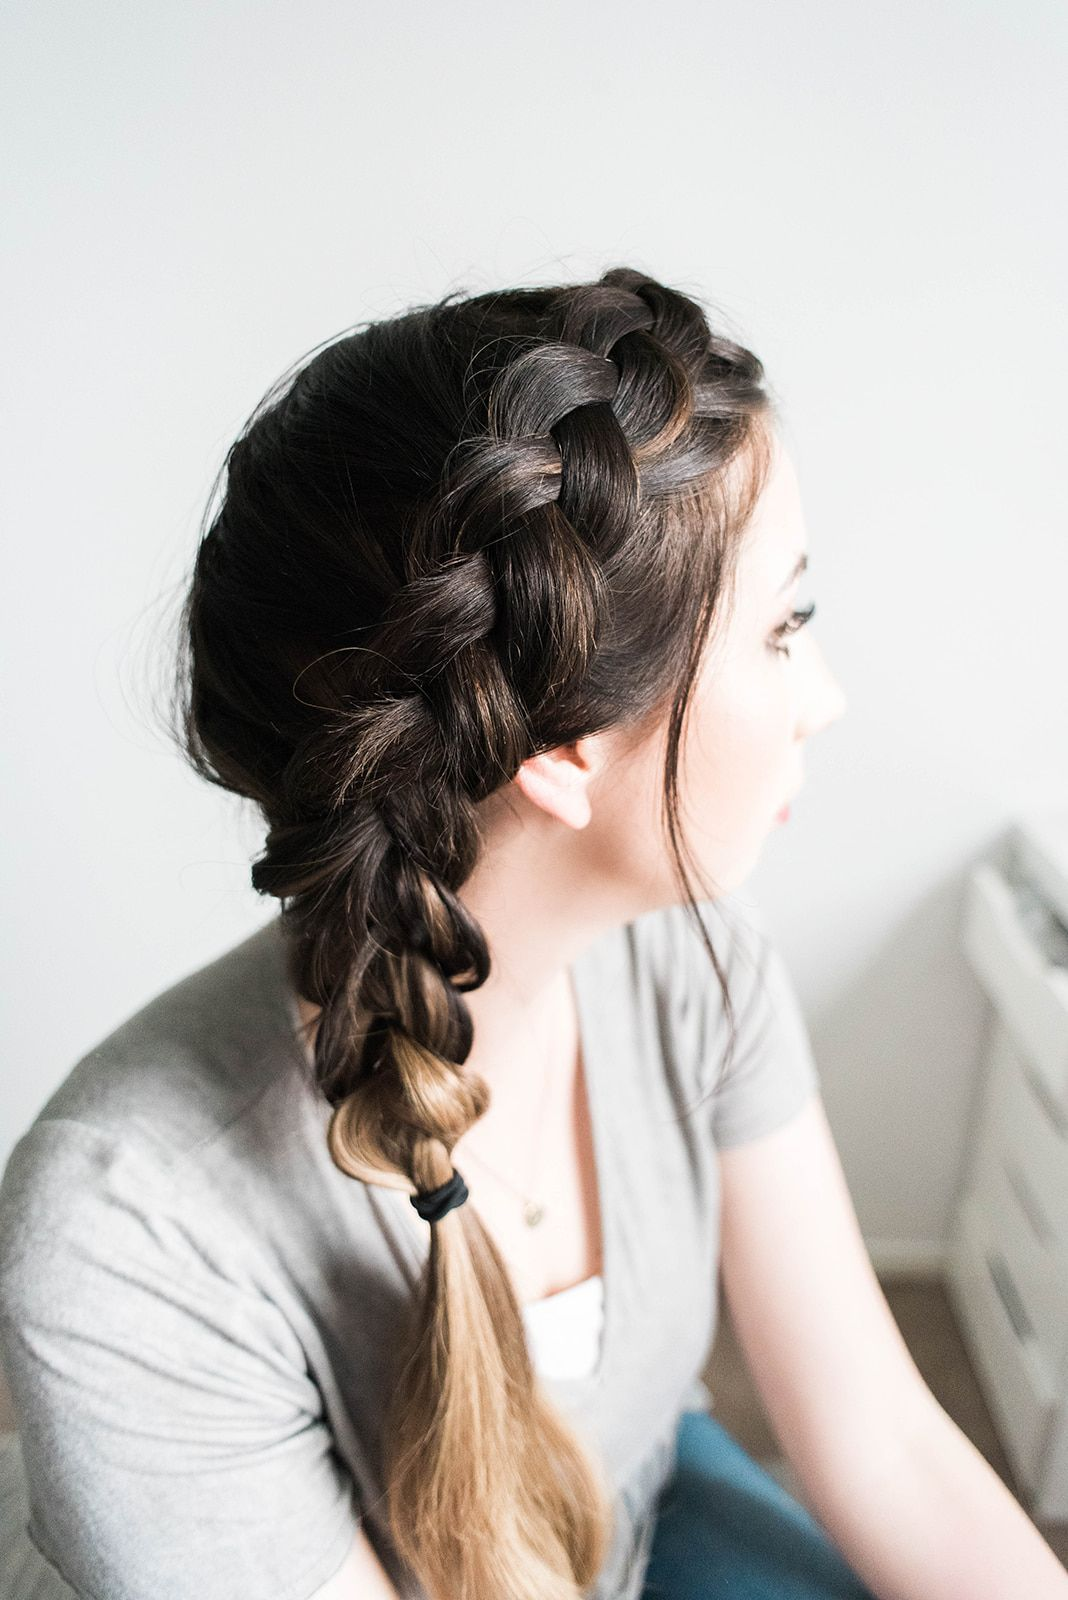 Chunky Side Dutch Braid Tutorial How To Braid Your Hair With